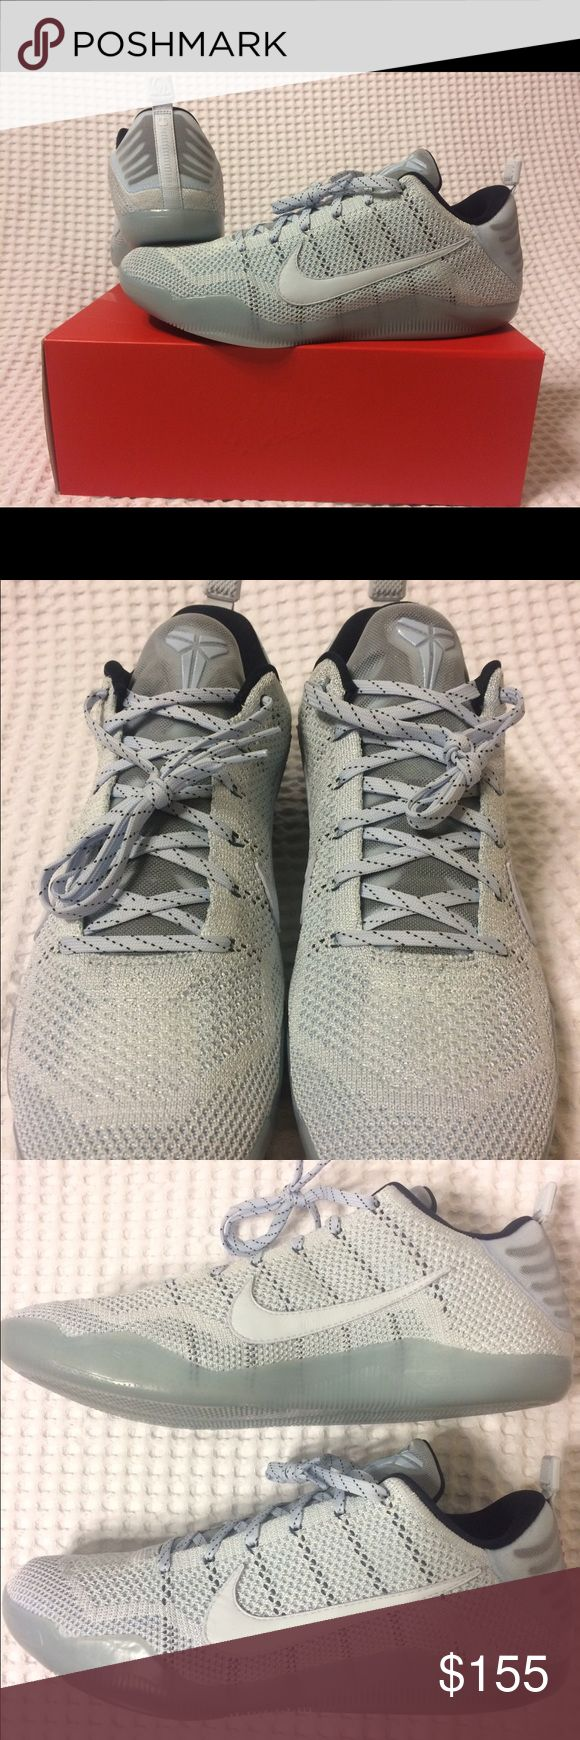 Nike Kobe 11 XI Elite Low Sneakers BRAND NEW, NEVER WORN Kobe Bryant 11 XI Elite Low Nike Sneakers in original box! SIZE come in Men's 13 Retails for $220 asking $155. NO LOWBALLS, will consider trade for other Jordans. If you're interested or have any questions, message me or text me at 5O3 48six 79one3  Tags: Air, Zoom, Sneakers, Kicks, Tennis shoes, Jordan's, Retro, Nike, Adidas, Basketball, Air Max, LeBron James, Kevin Durant, NBA, NFL, Kicks, Dame, Steph Curry, Kobe Bryant, Black Mamba…